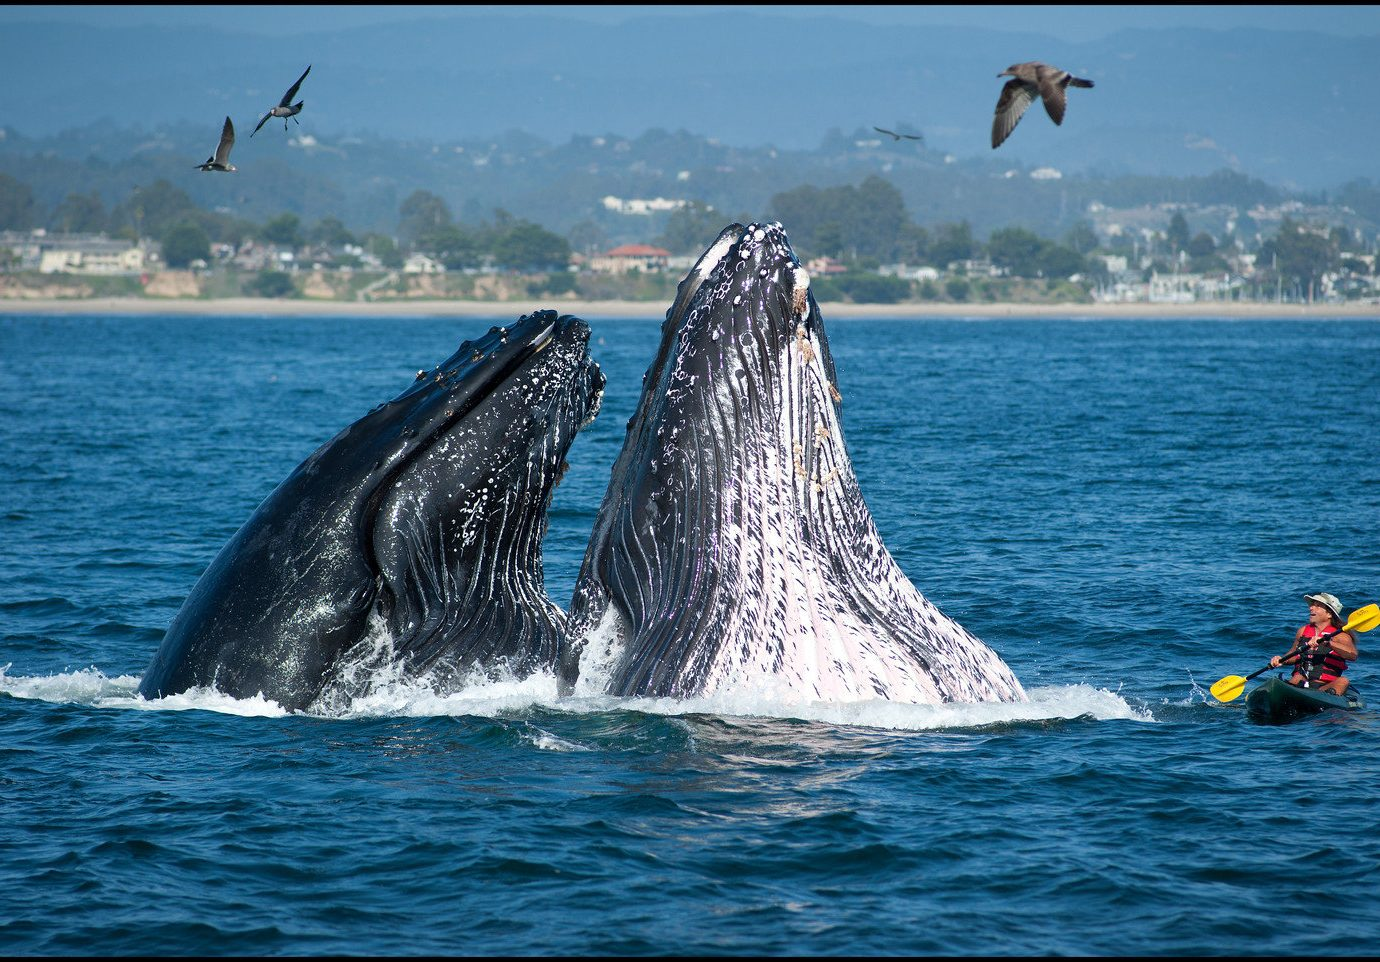 Trip Ideas water outdoor sky aquatic mammal animal mammal marine mammal vertebrate whales dolphins and porpoises marine biology Boat humpback whale Ocean whale Sea grey whale biology wind wave